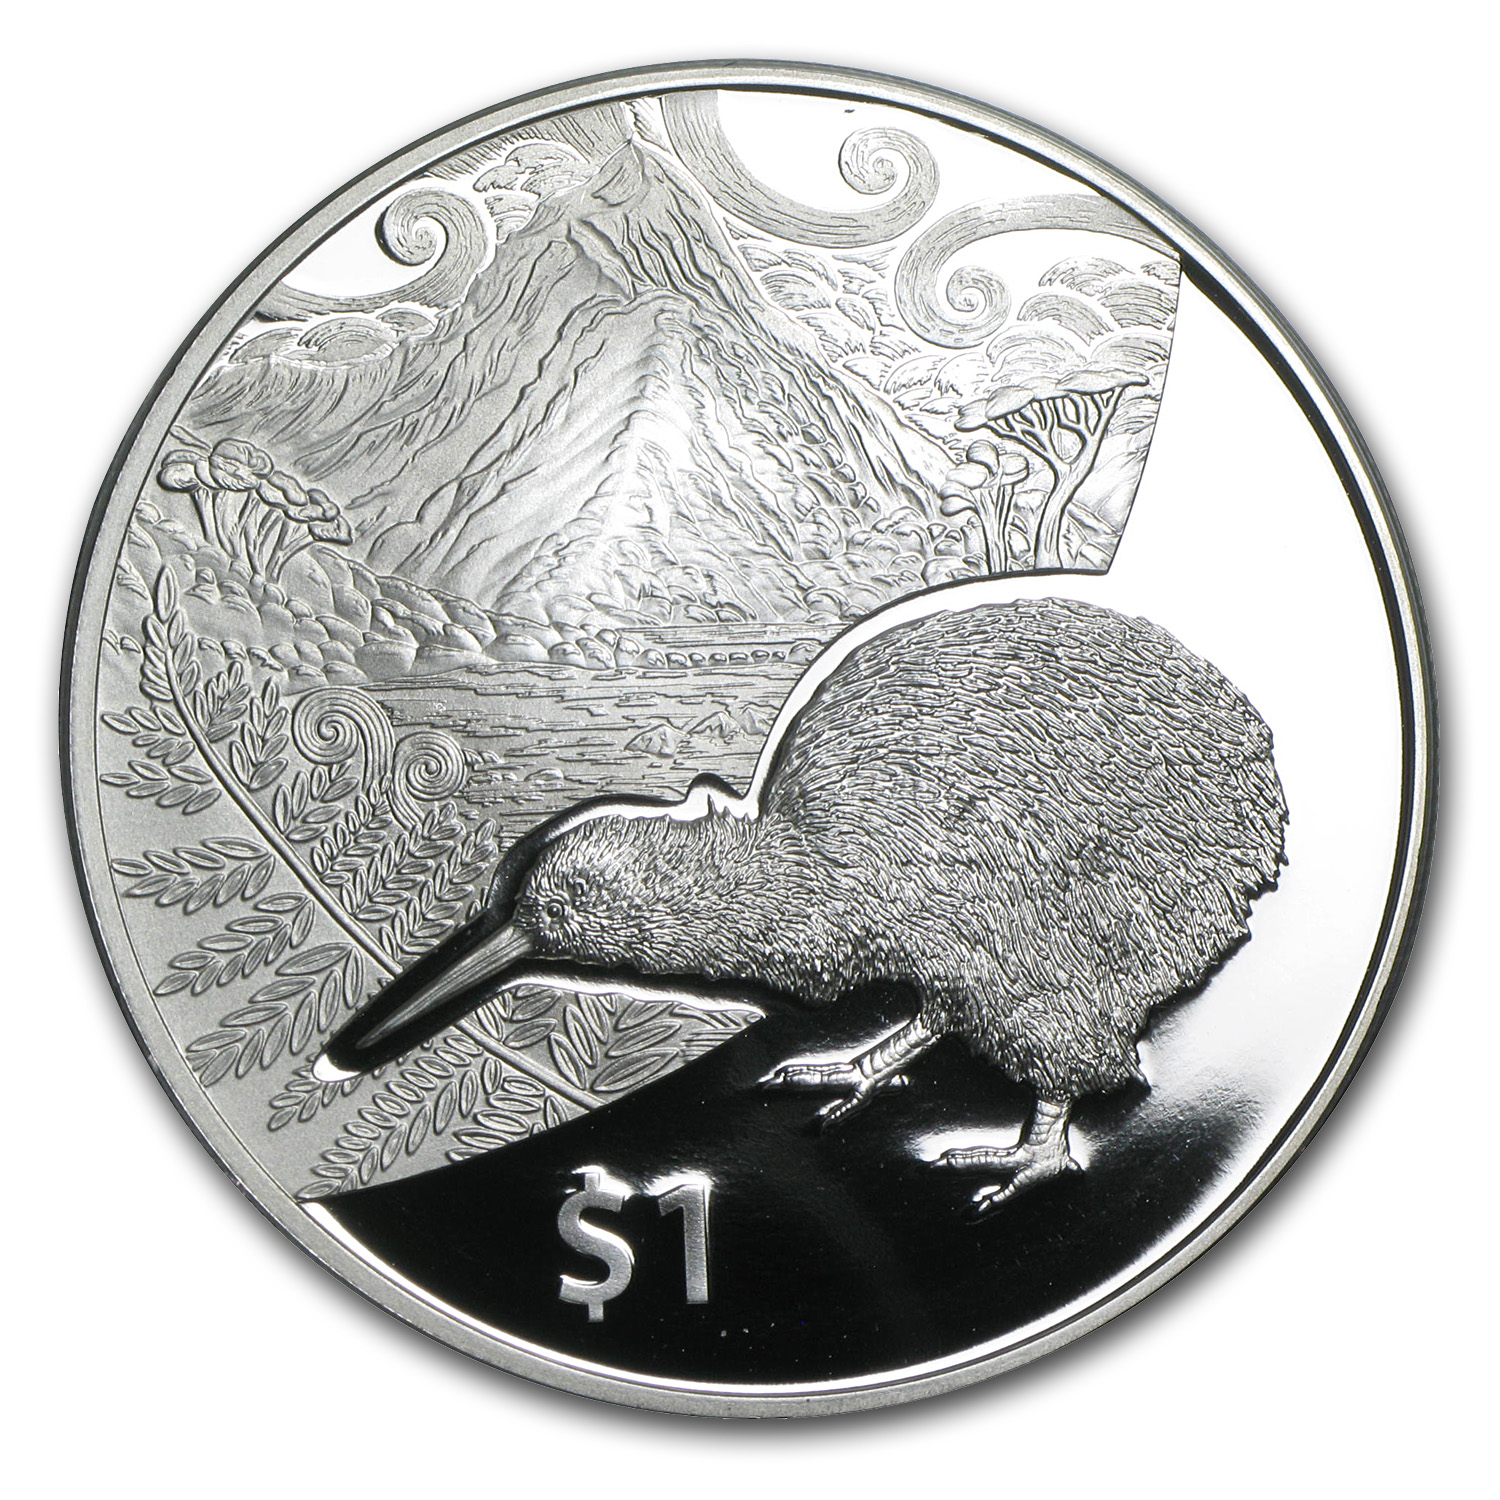 2014 New Zealand 1 oz Silver Treasures $1 Kiwi Proof